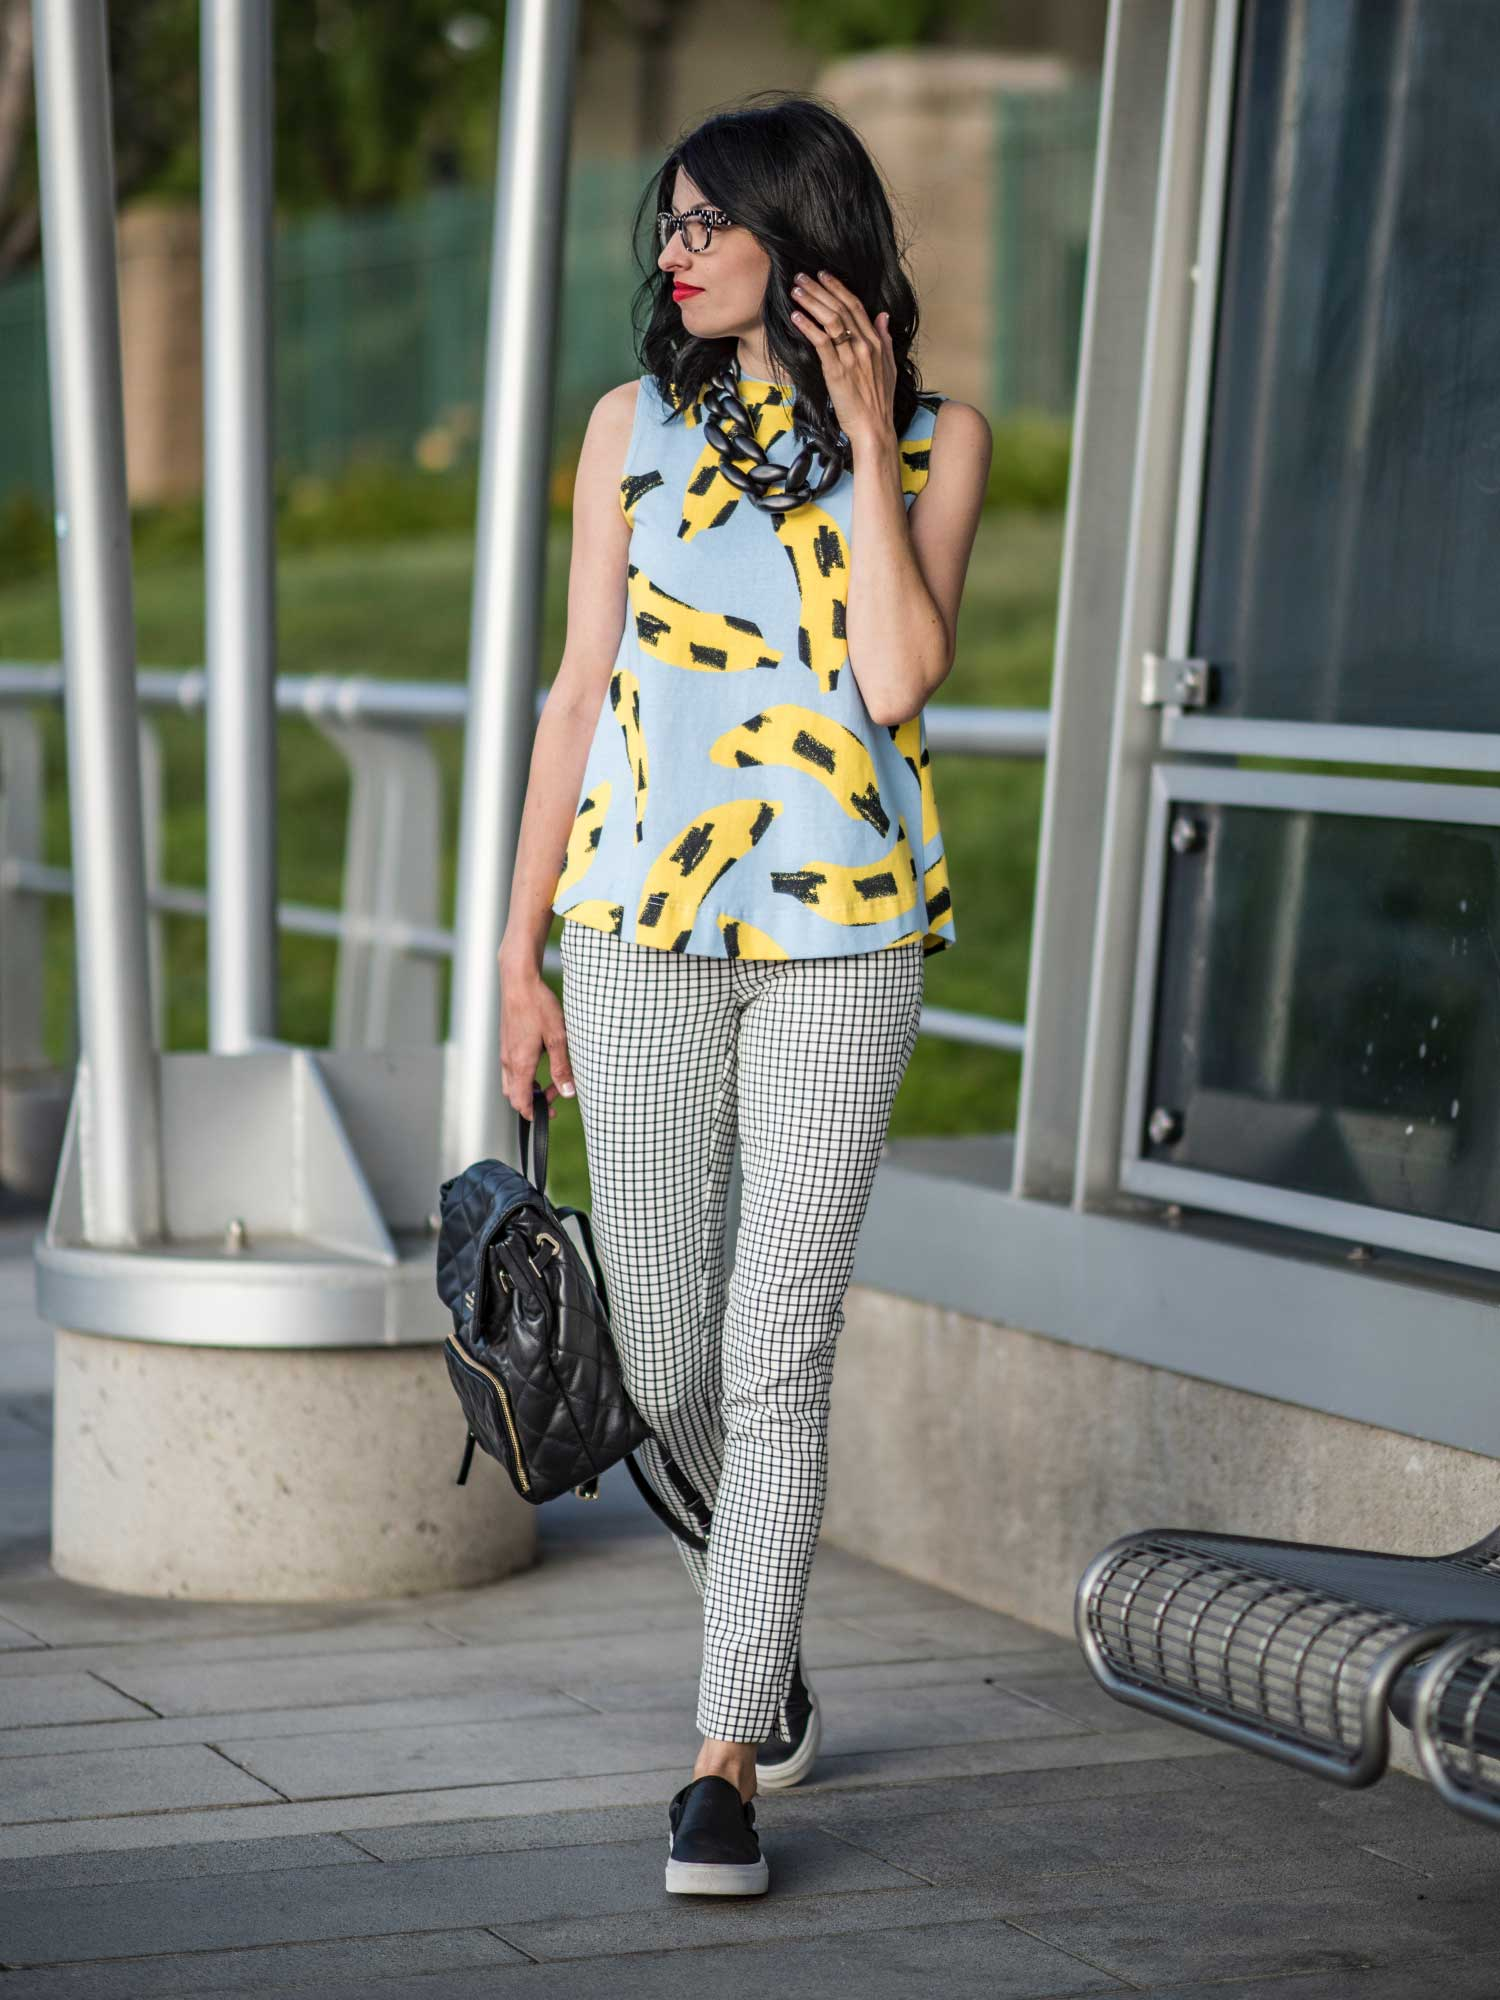 Jenna-Pilant-San-Diego-Style-Blogger-Lucky-Little-Mustardseed-How-To-Wear-A-Banana-Print-5